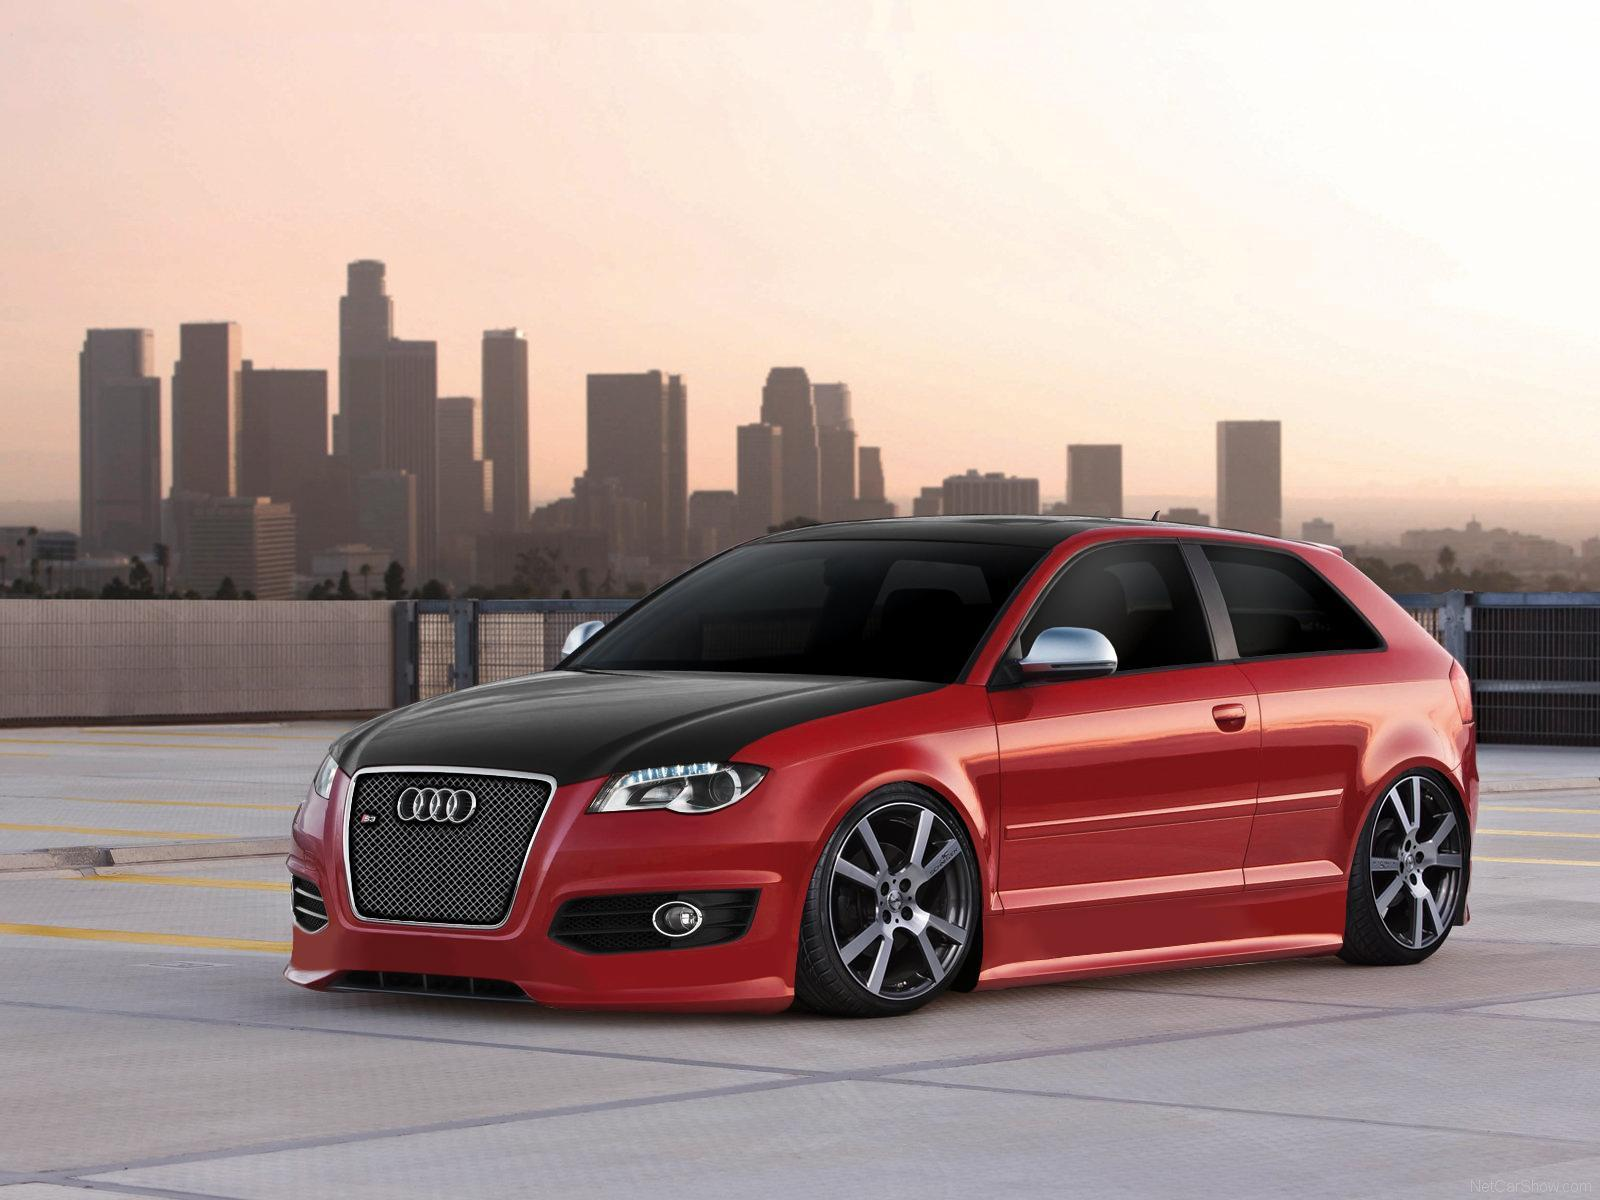 Audi Images Audi S3 Tuning Hd Wallpaper And Background